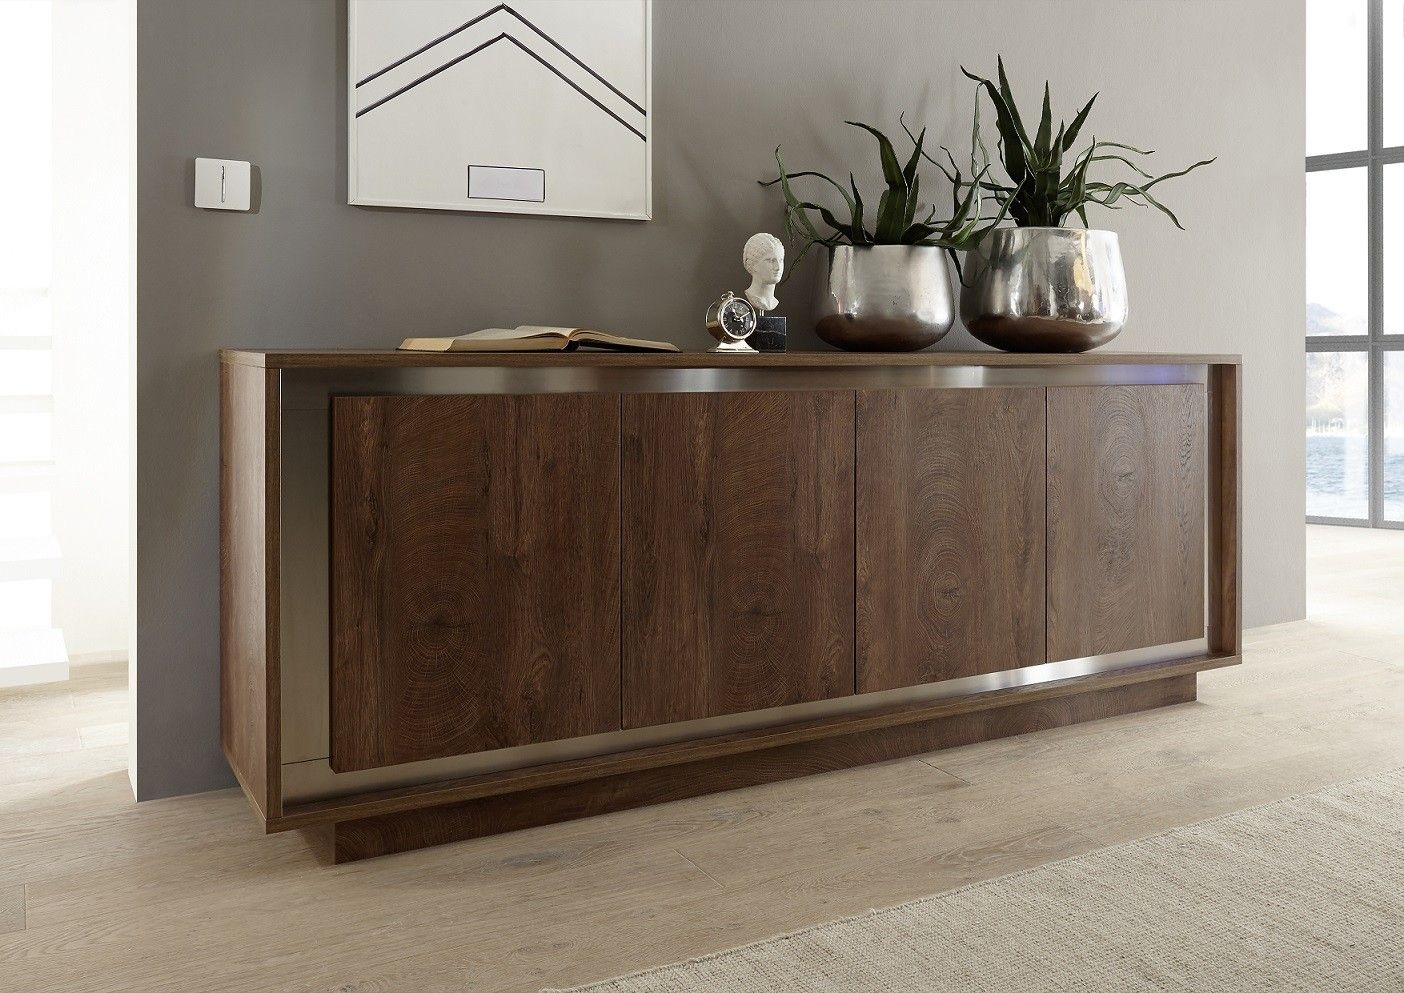 Remove The Stake And Furnish Your Home With The Contemporary